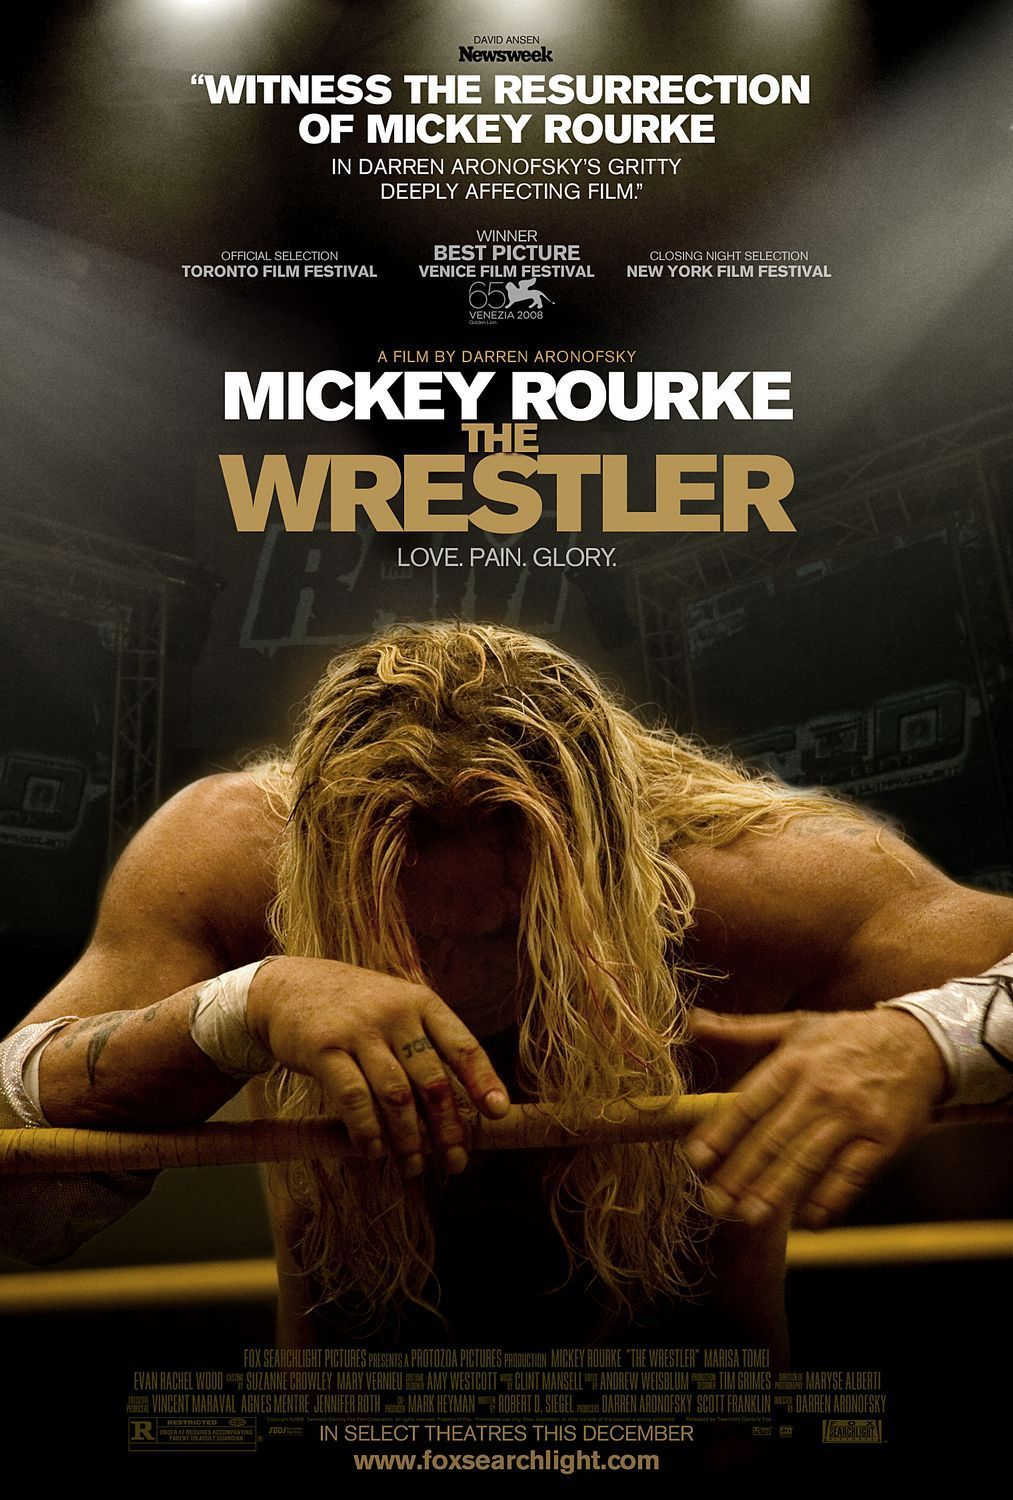 Film Review: The Wrestler